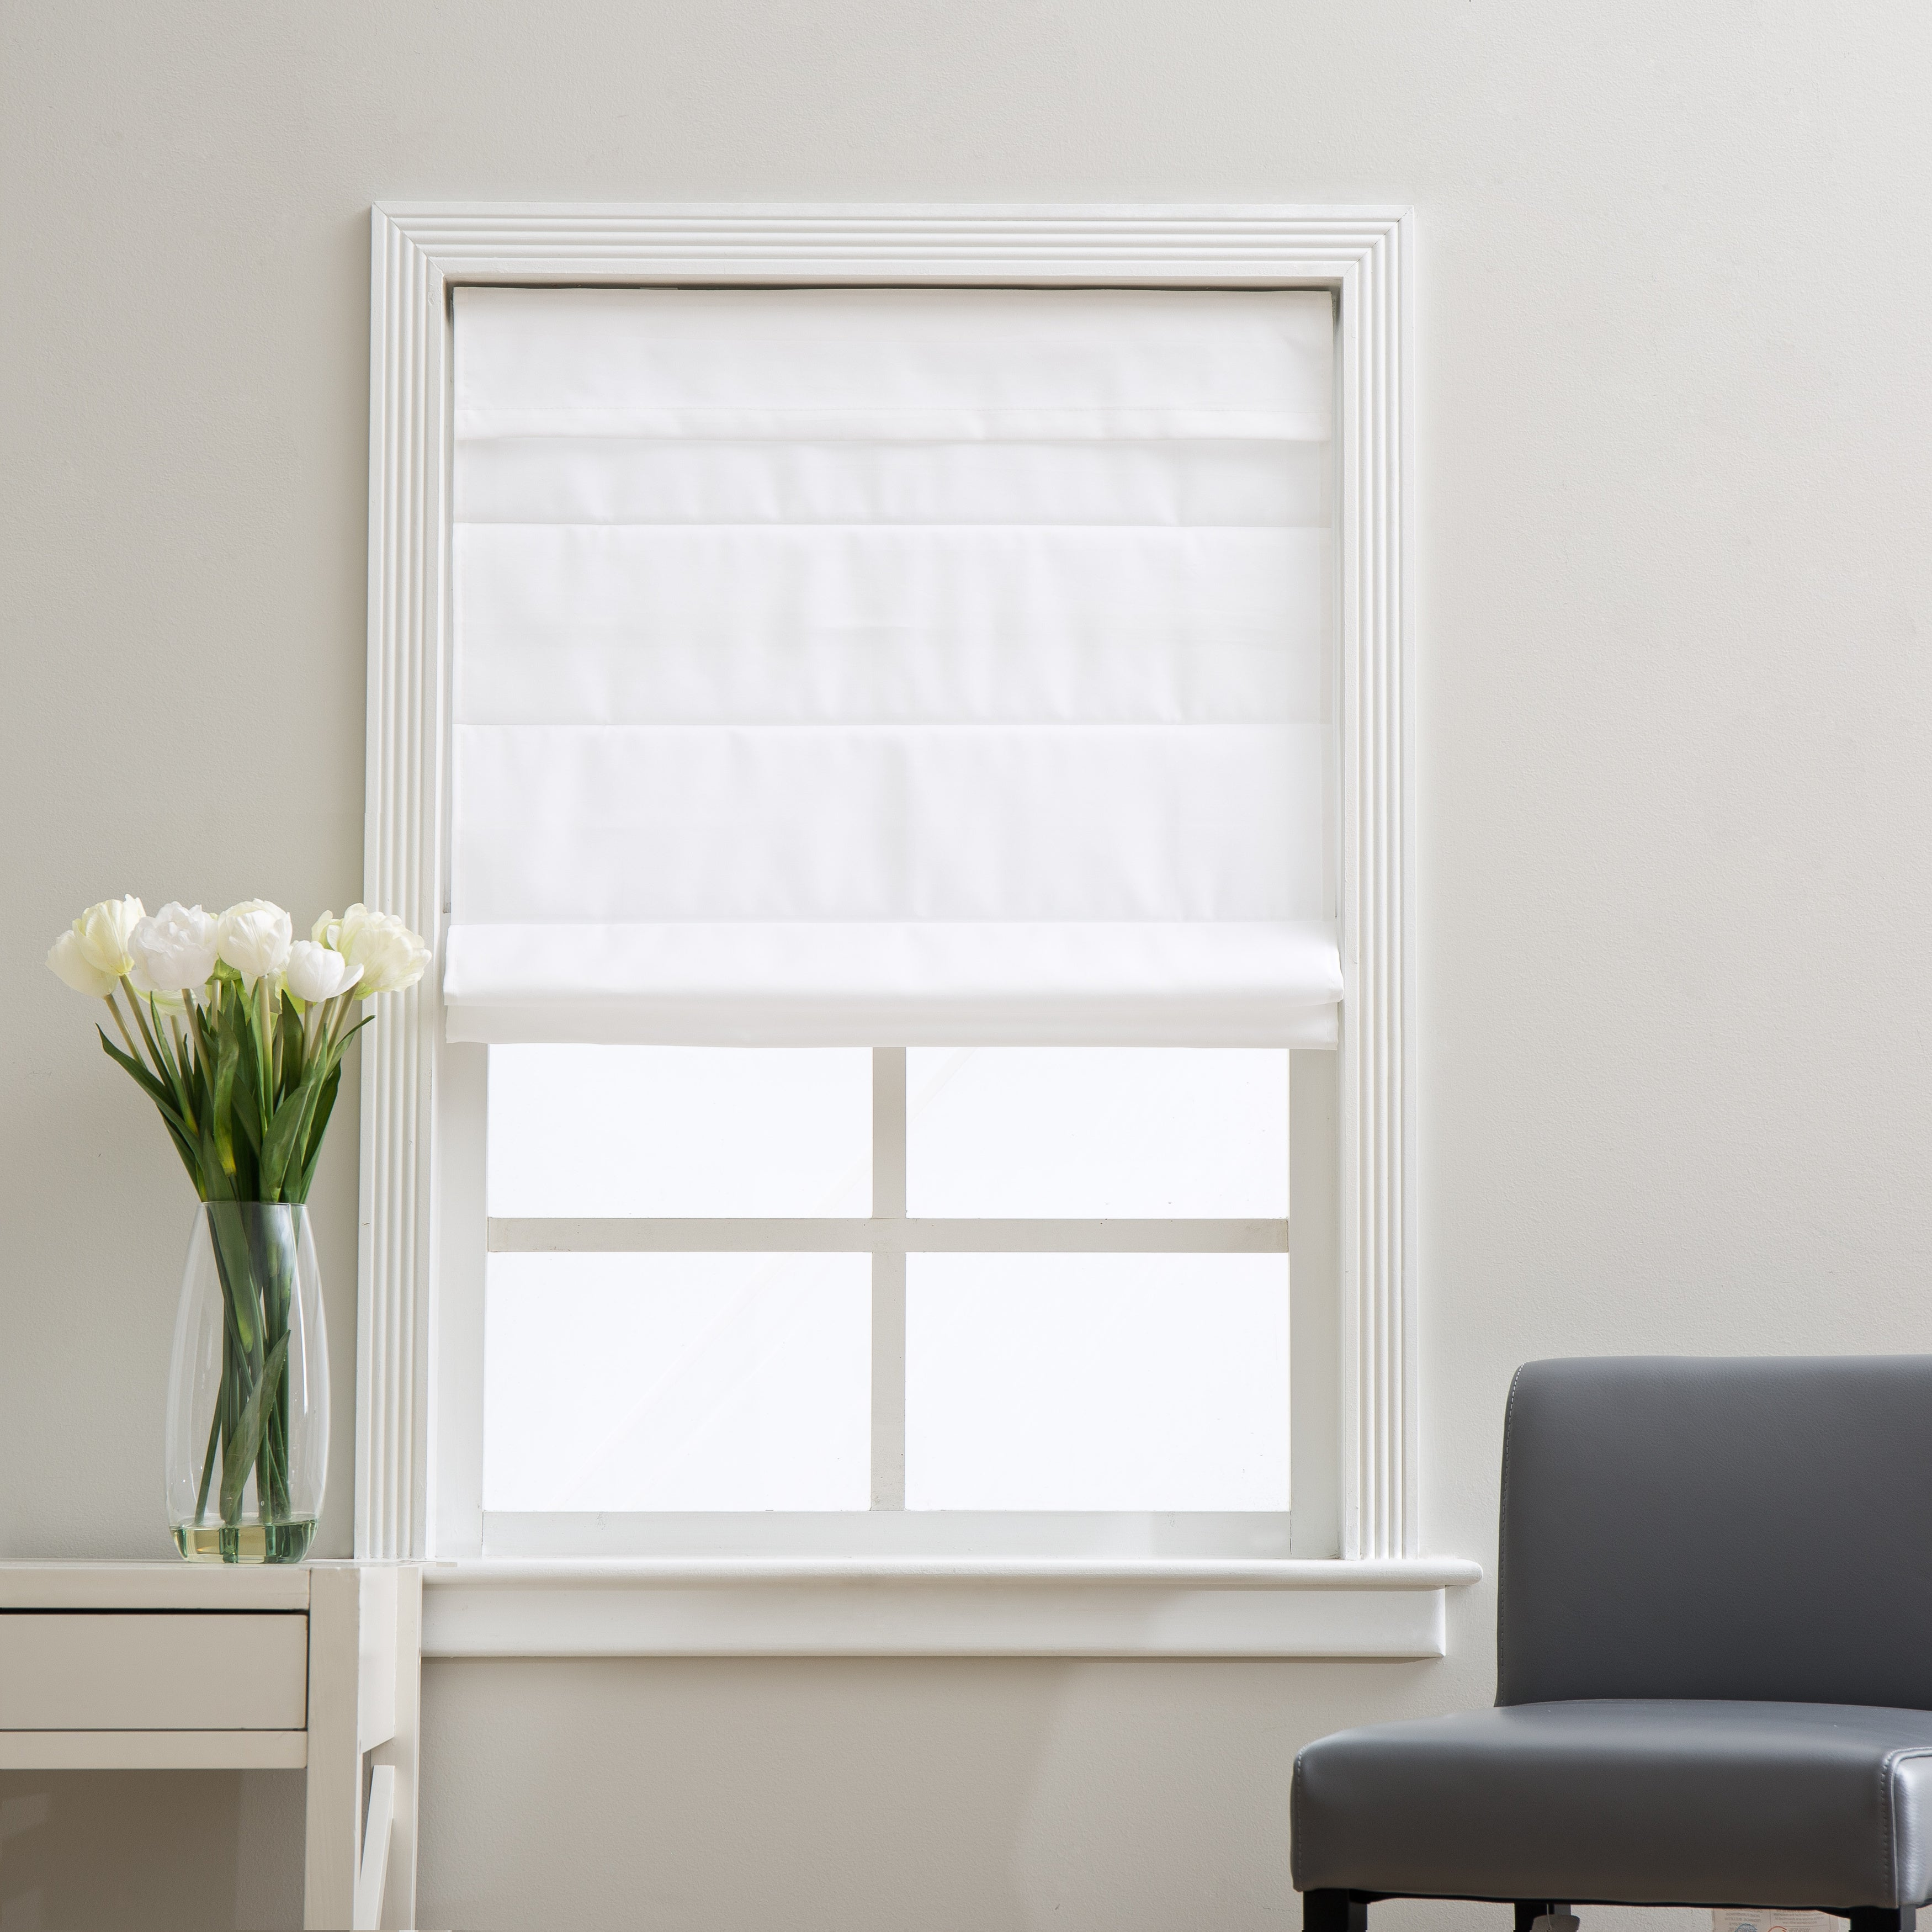 black venice blinds vision products wholesale orion window ll furnishings fabric louvolite manufacturer